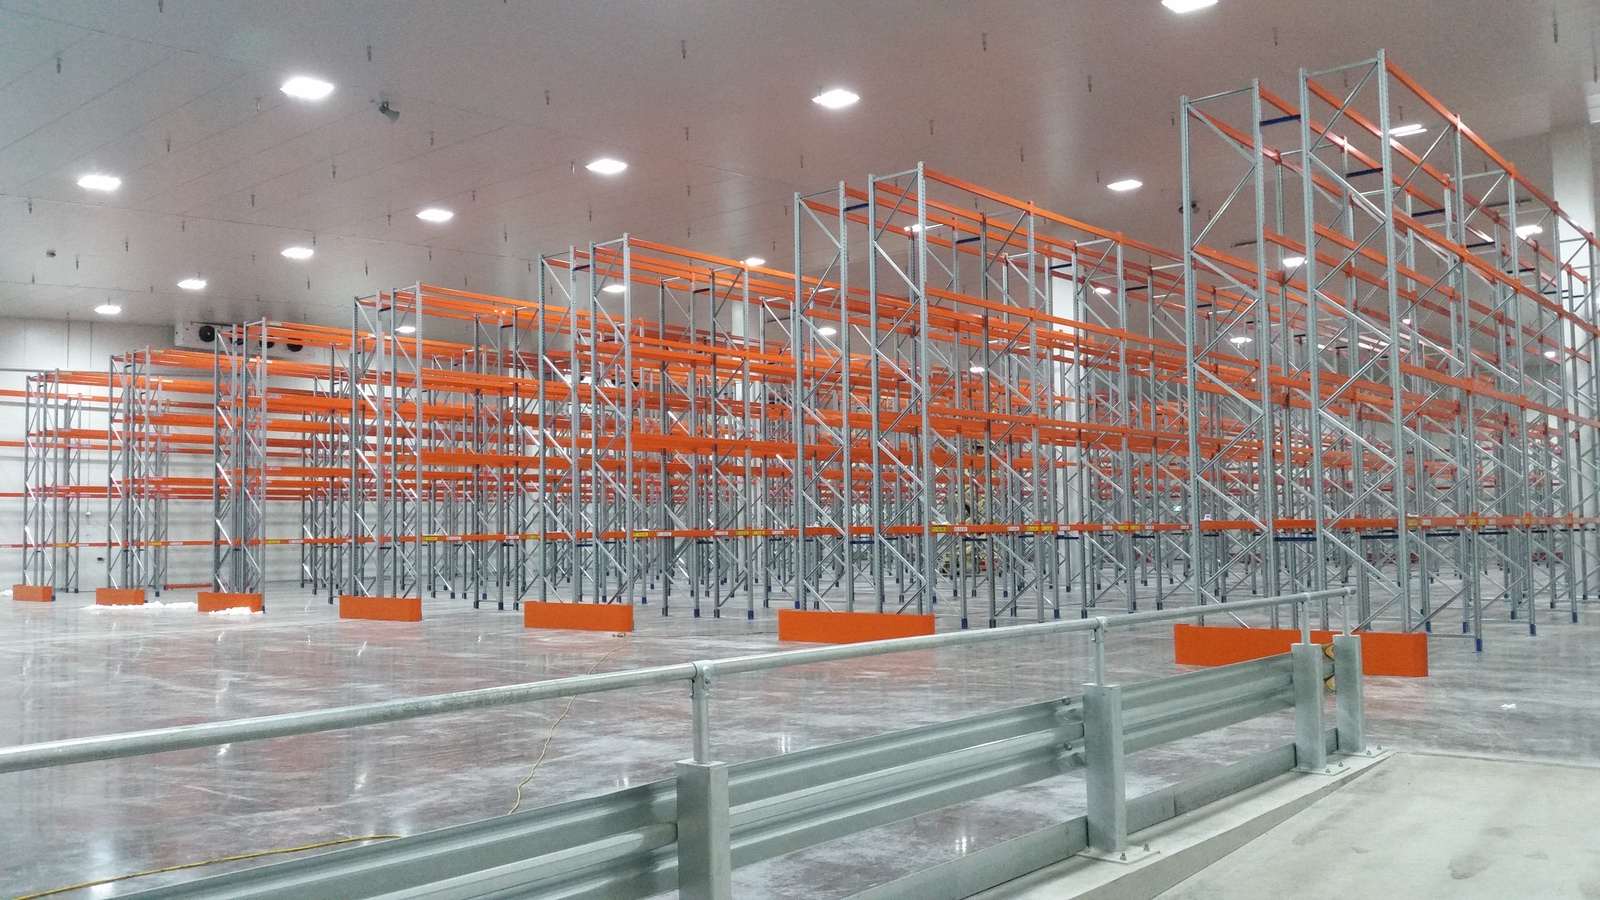 warehouse racking system being constructed